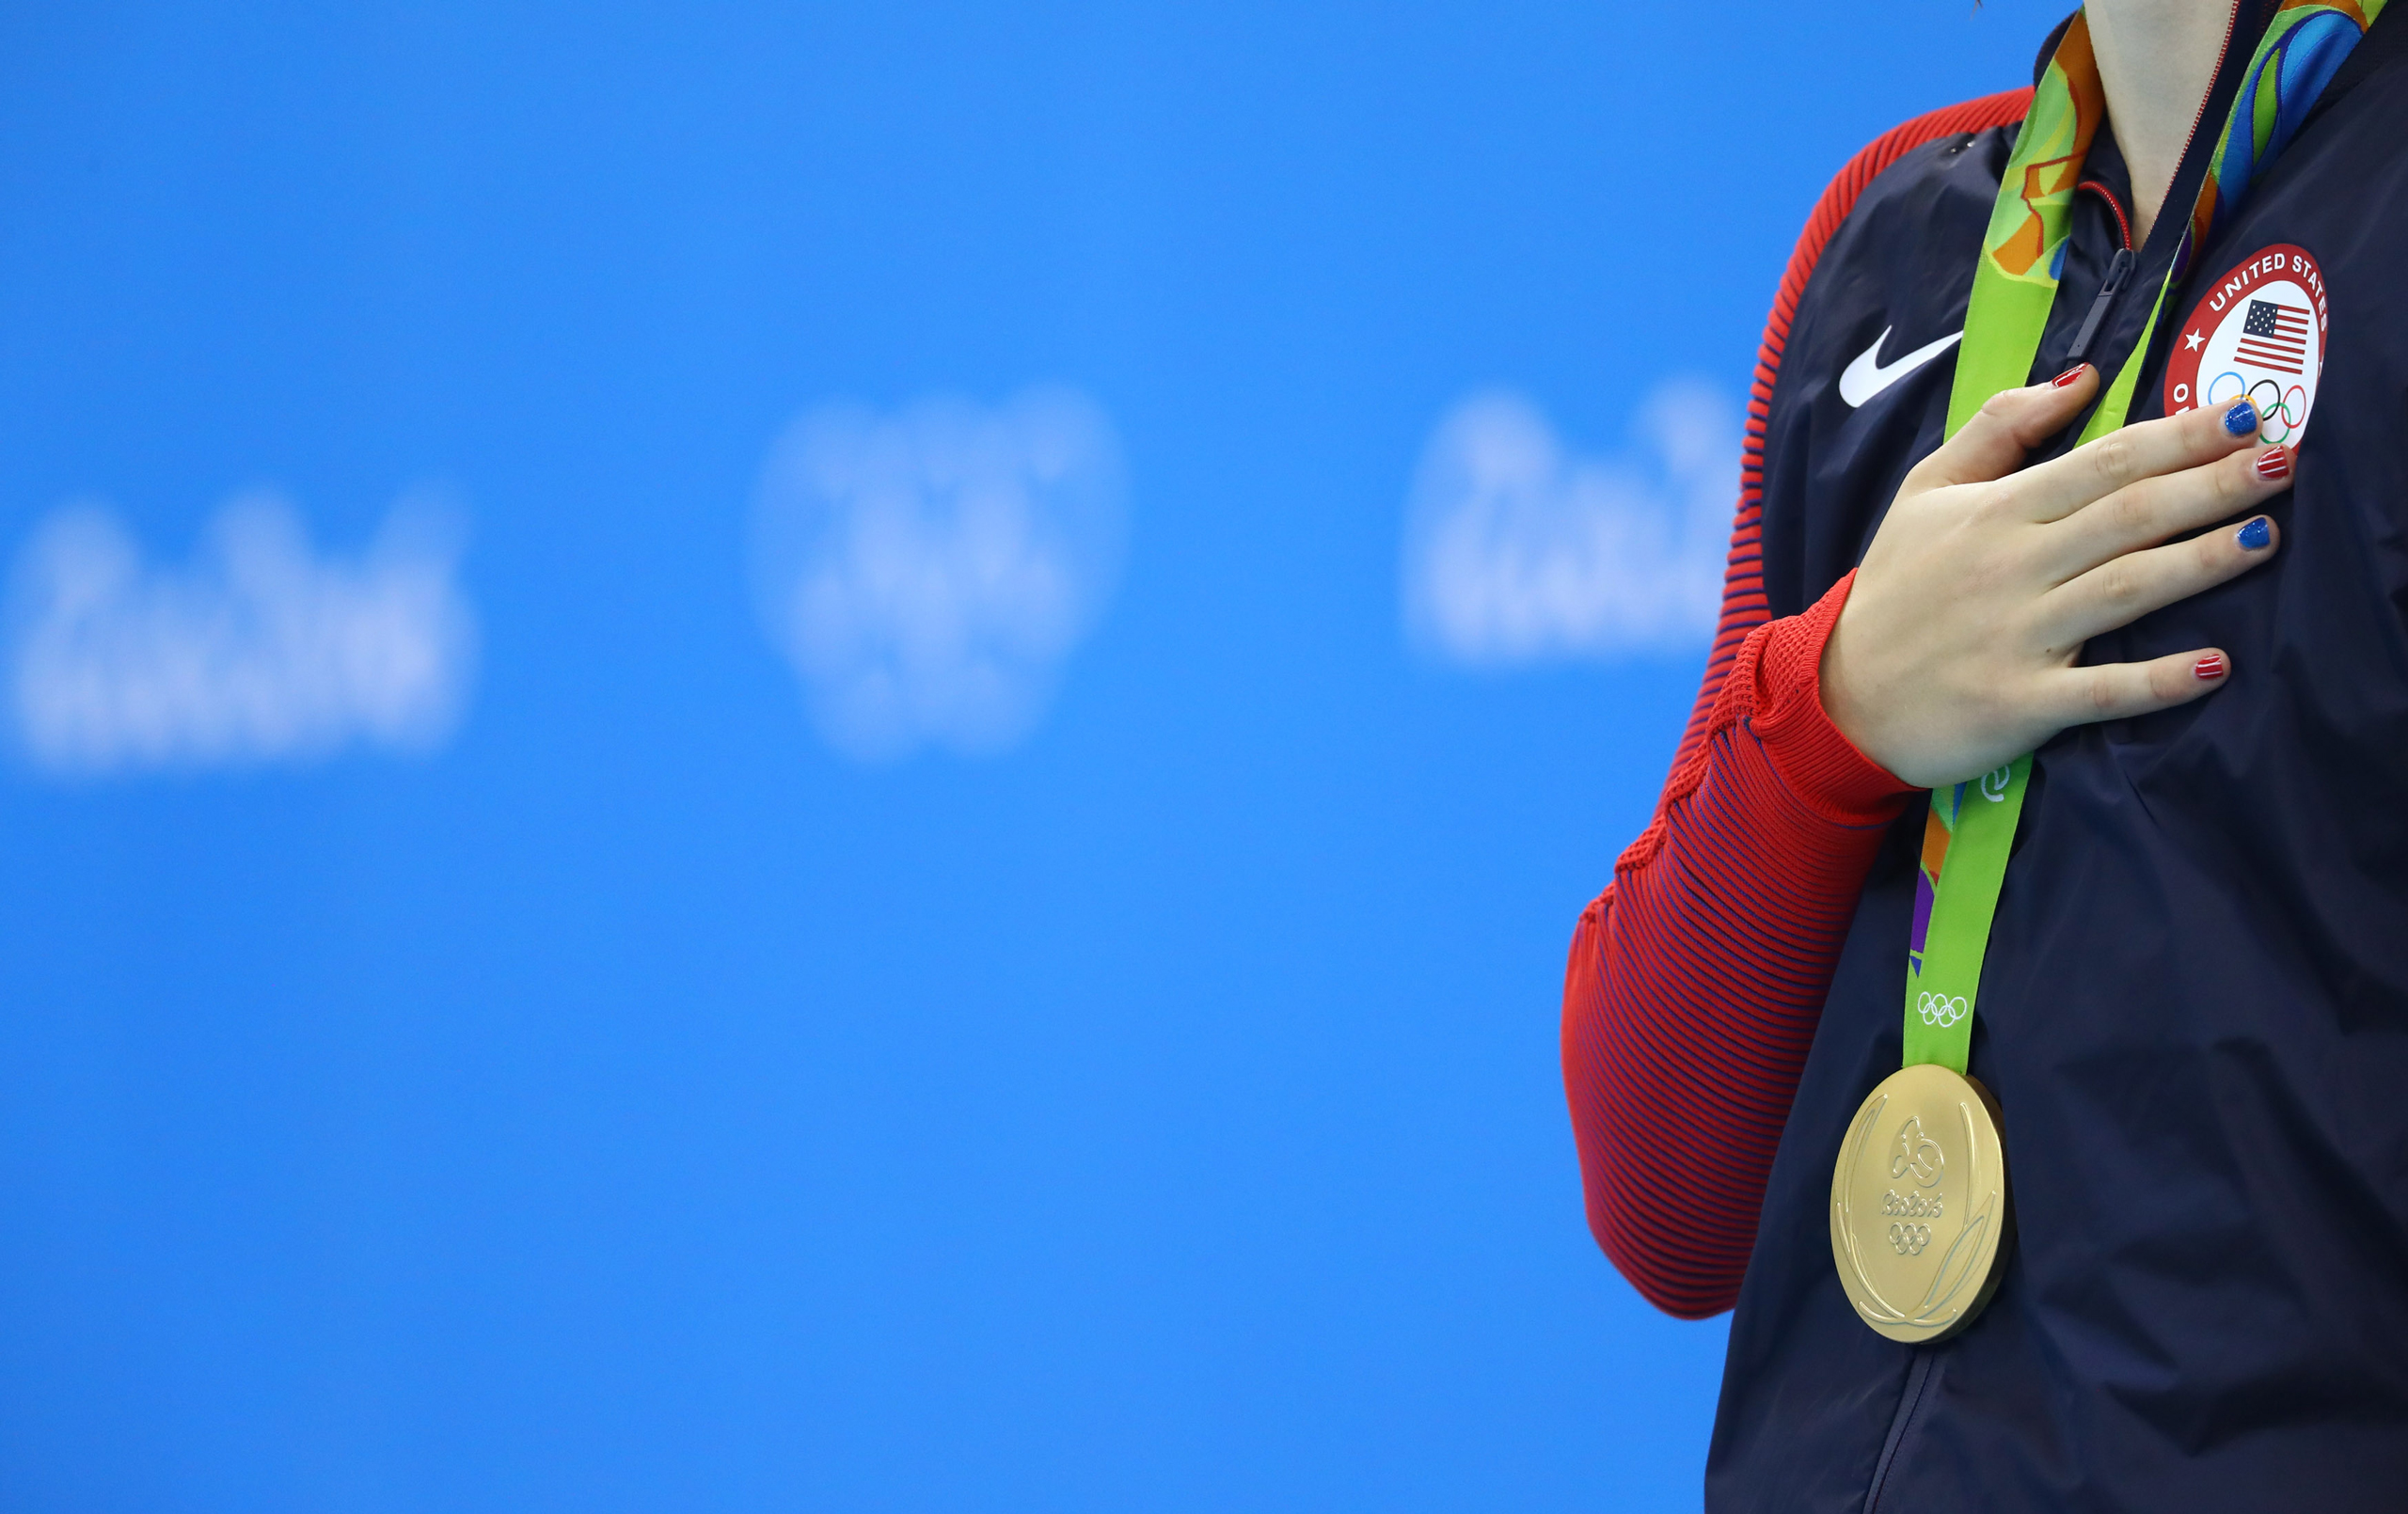 Katie Ledecky of USA stands to attention during the national anthem after winning the gold medal in the Women's 200m Freestyle at the 2016 Rio Olympics in Rio de Janeiro on Aug. 9, 2016.